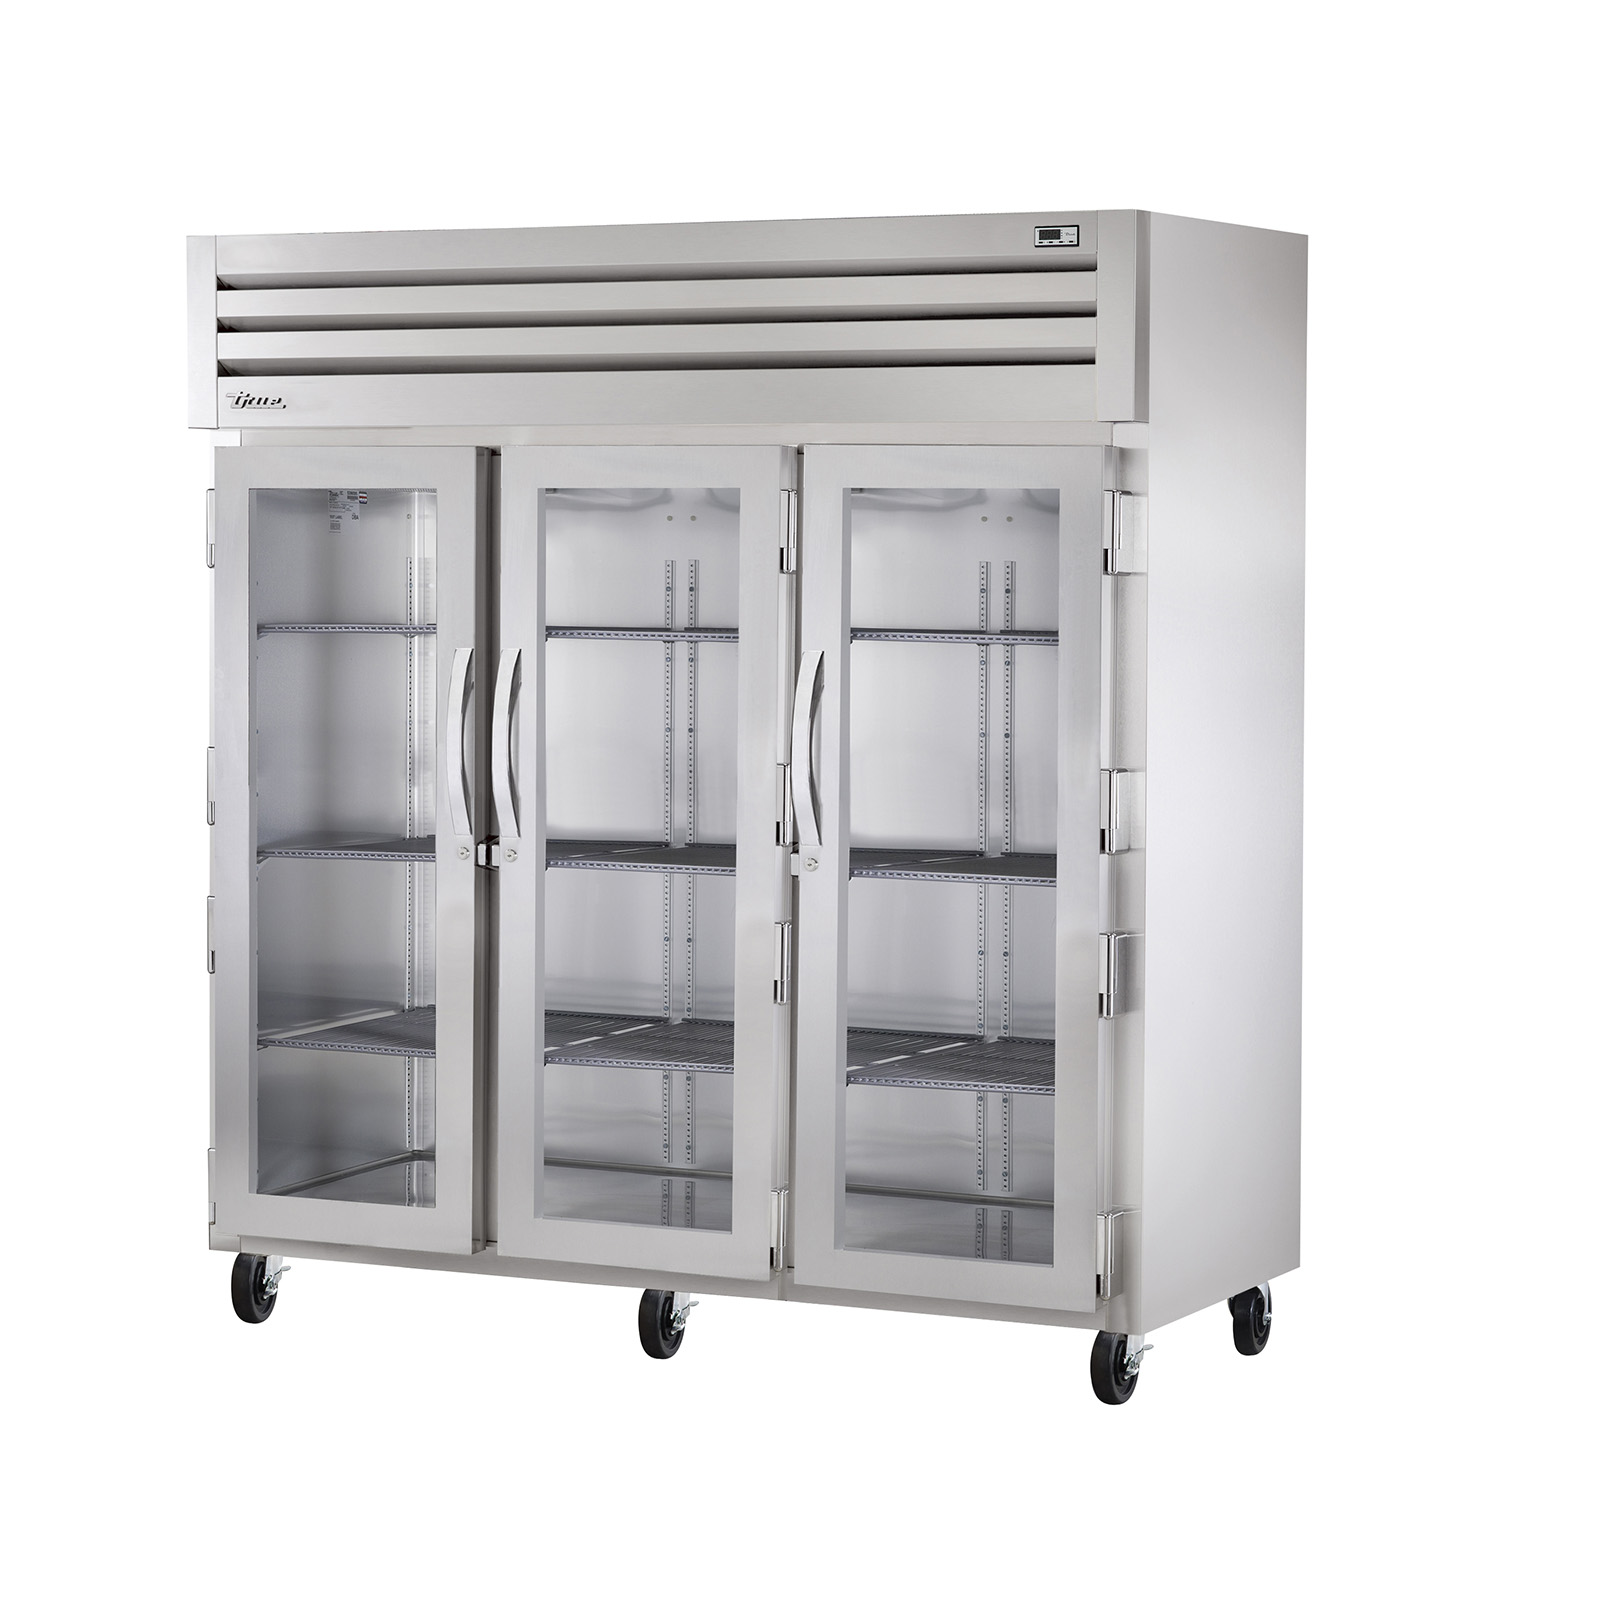 STR3R-3G True - SPEC SERIES« Refrigerator Reach-in